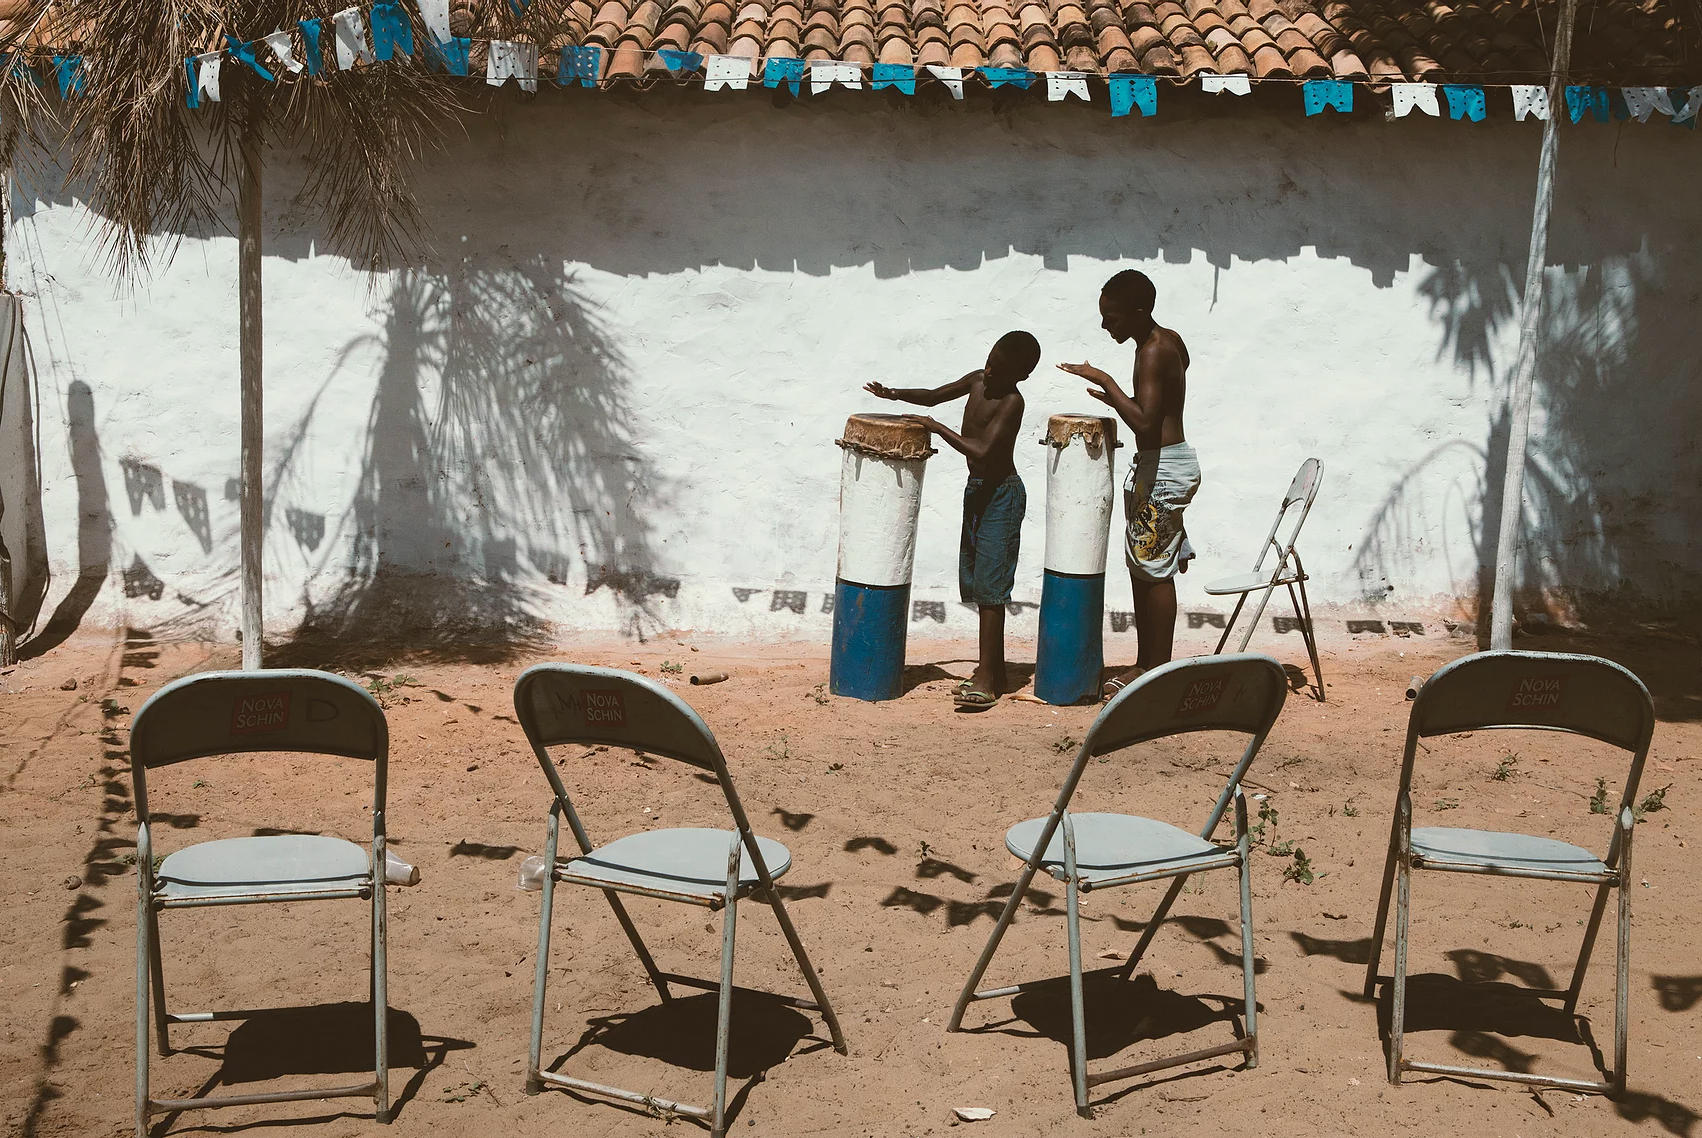 color photo by Alex Almeida from Brazil Tropical light. boys playing drums.